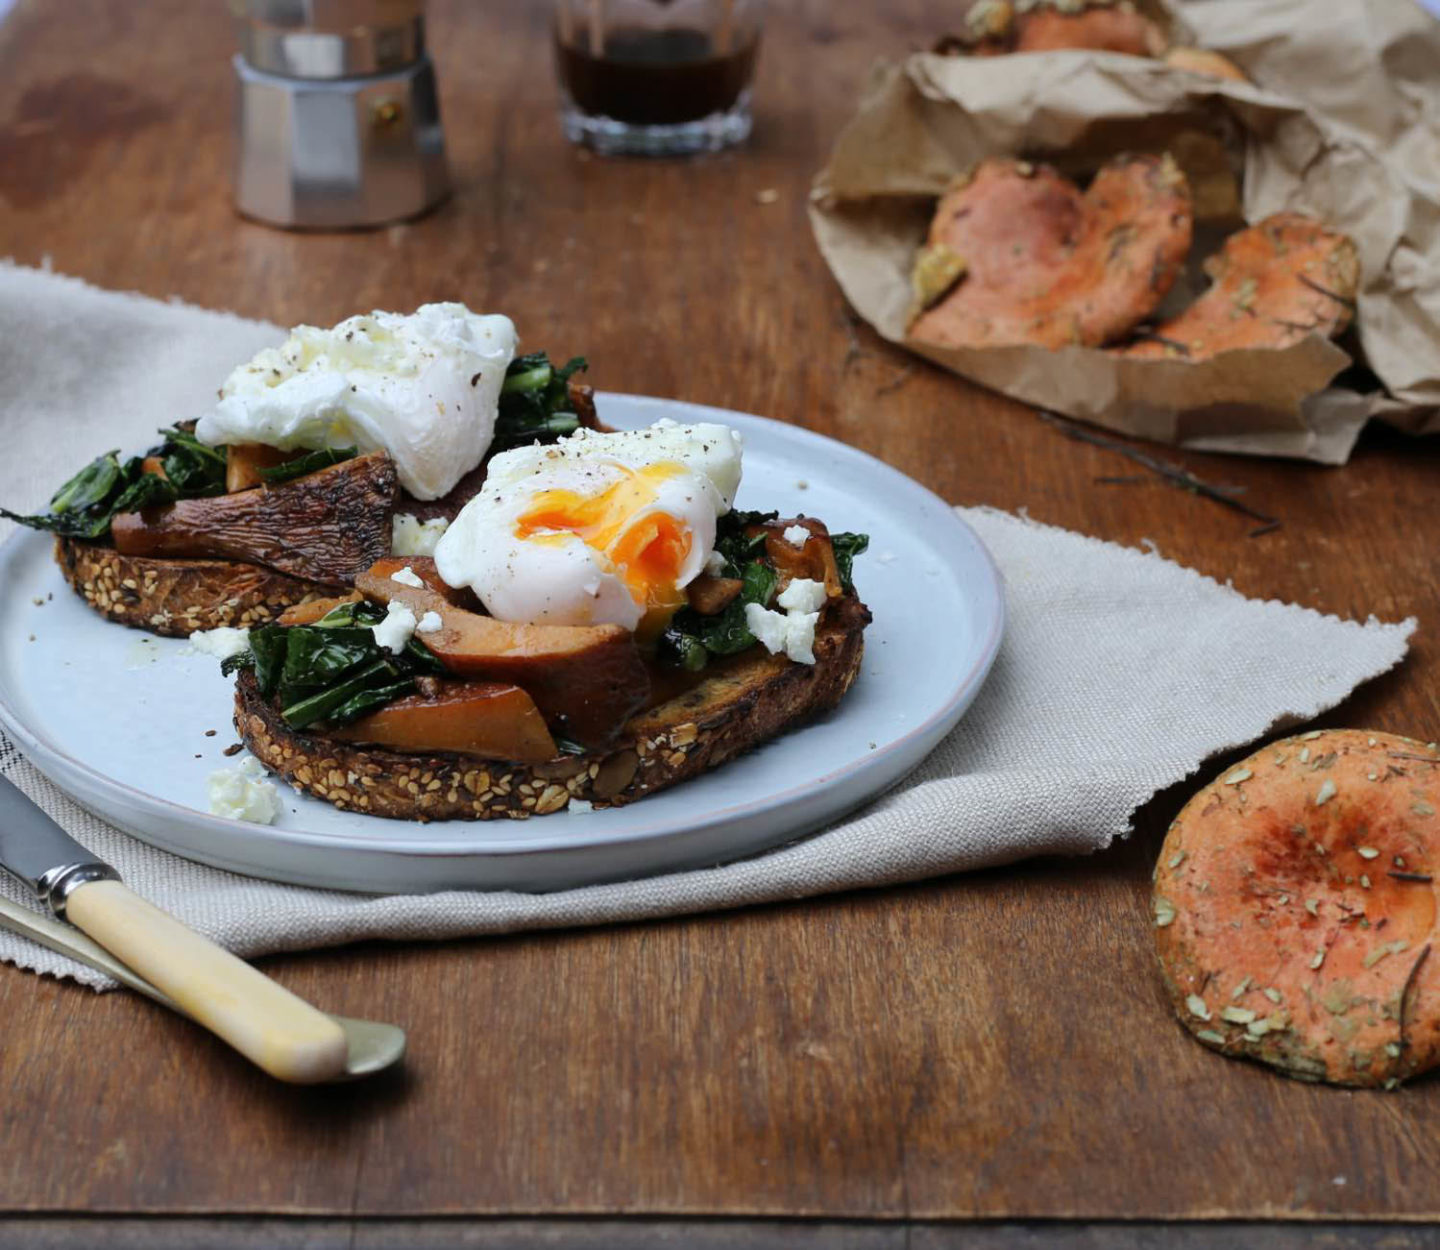 Wild mushrooms and tuscan kale with poached eggs